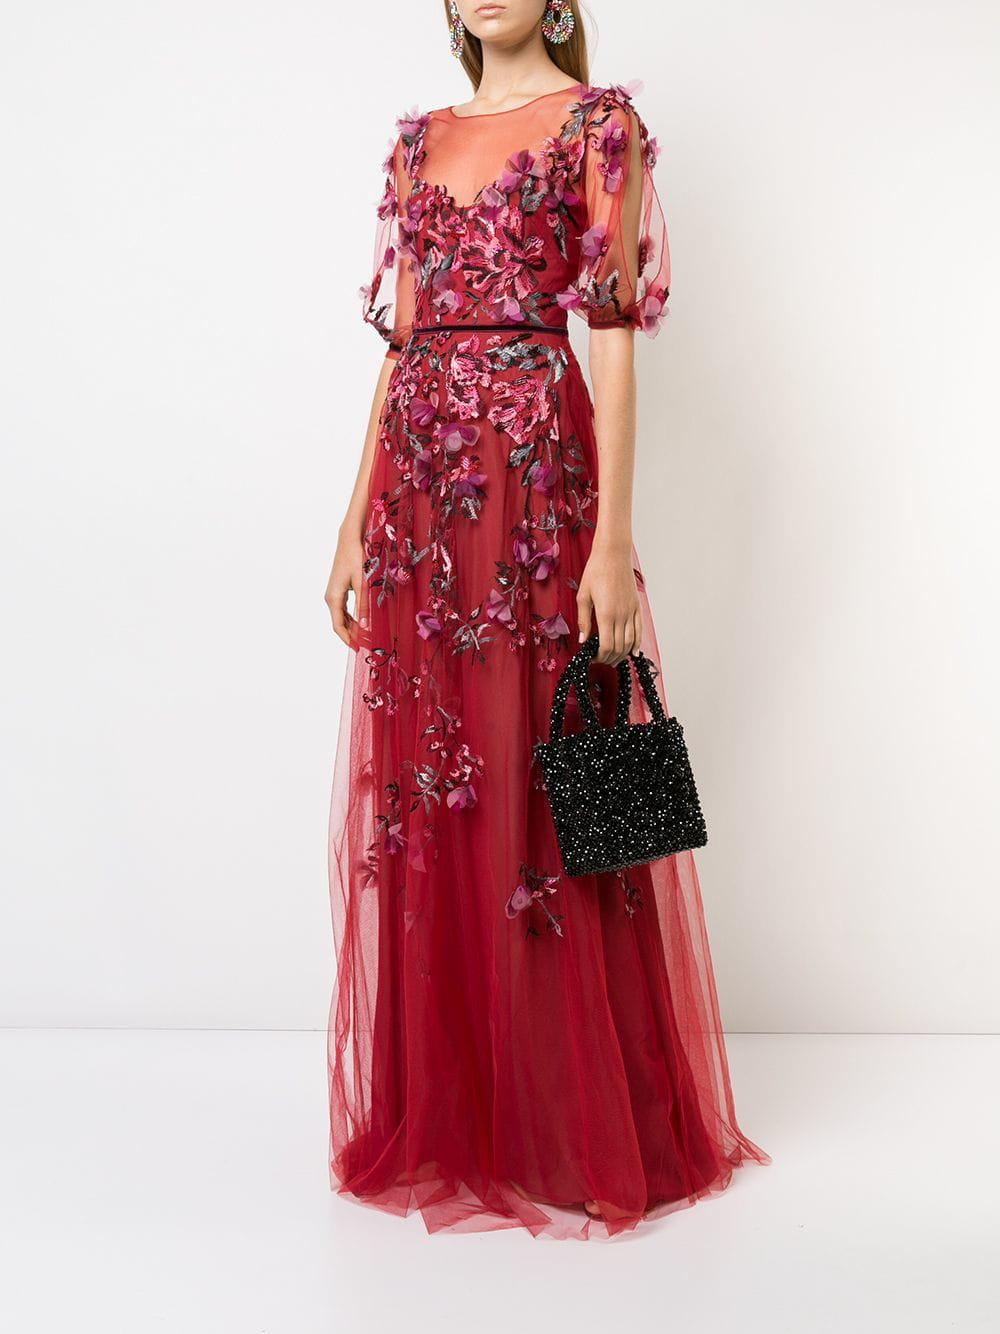 b9ce74e4fbd171 Lyst - Marchesa notte Embroidered Floral Tulle Gown in Red - Save 50%